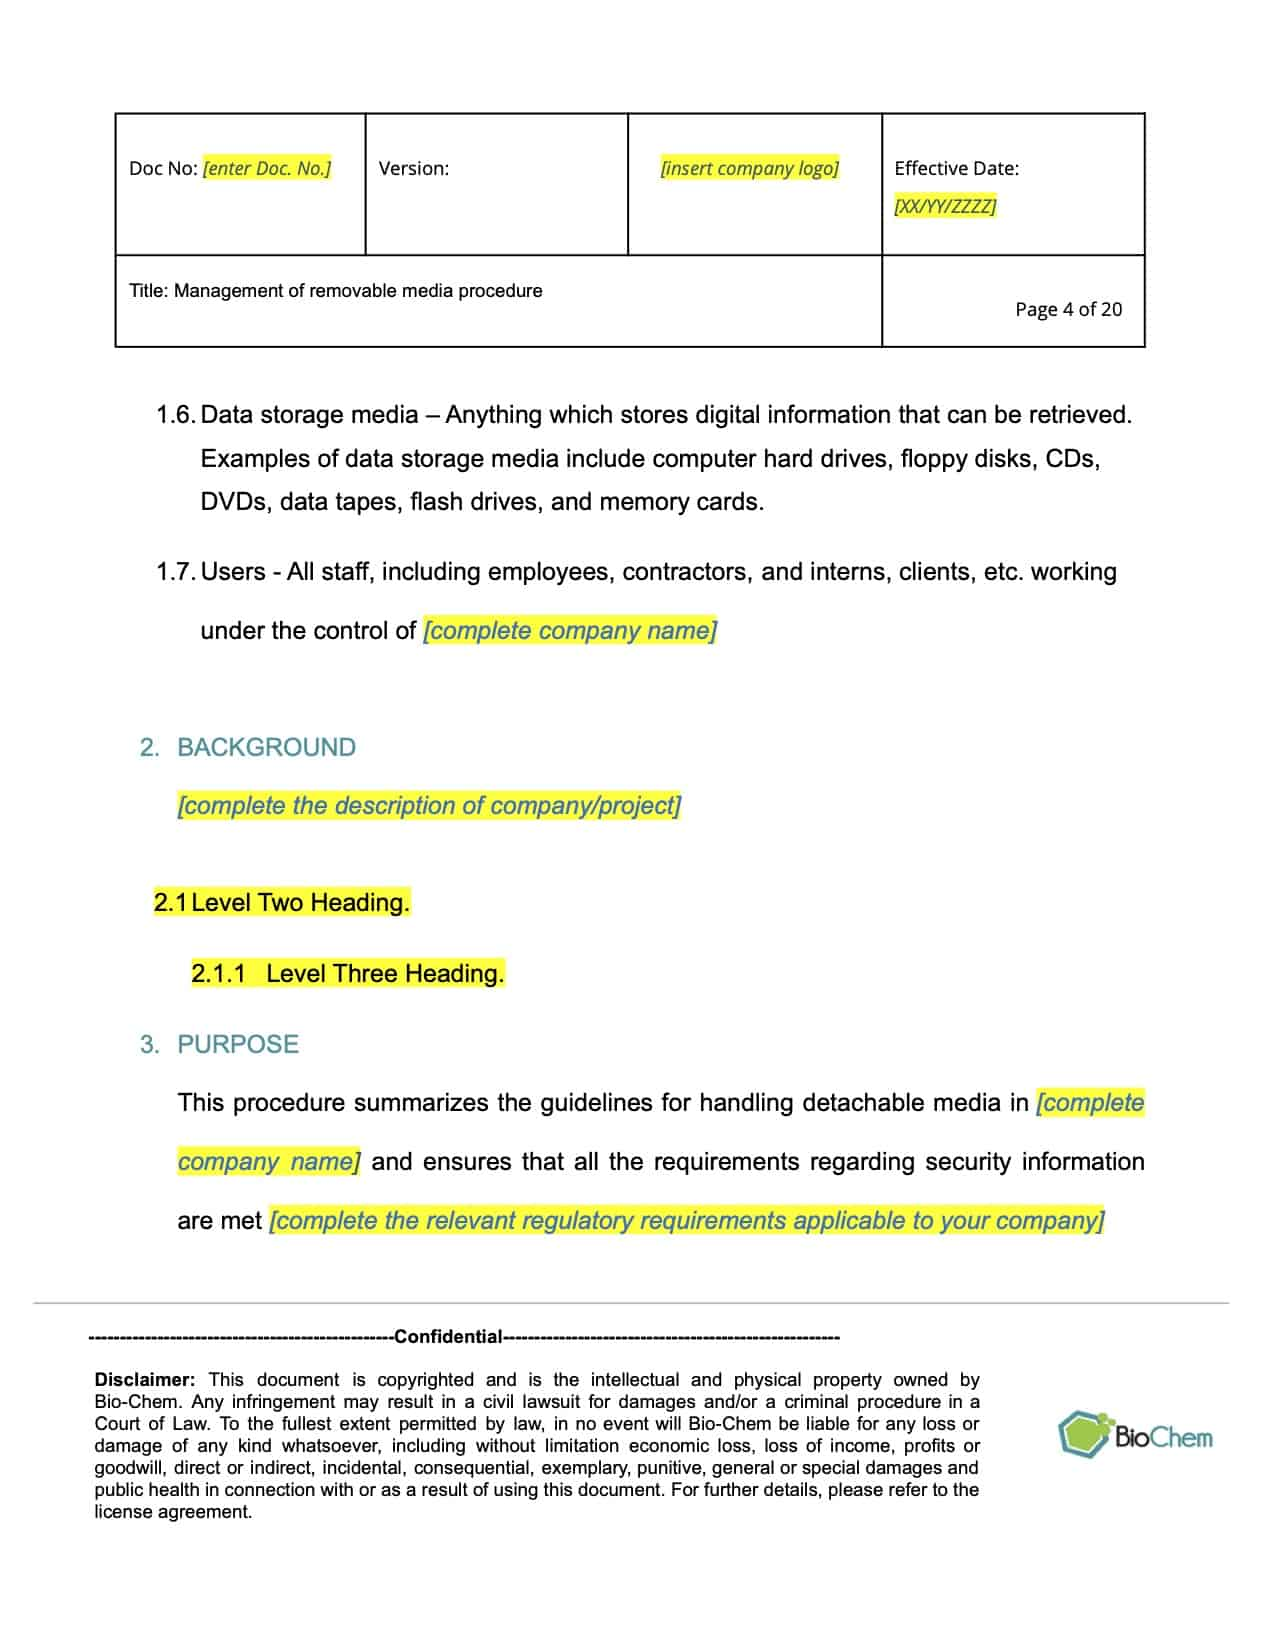 Management of Removable Media_BioChem_ISMS template preview 4